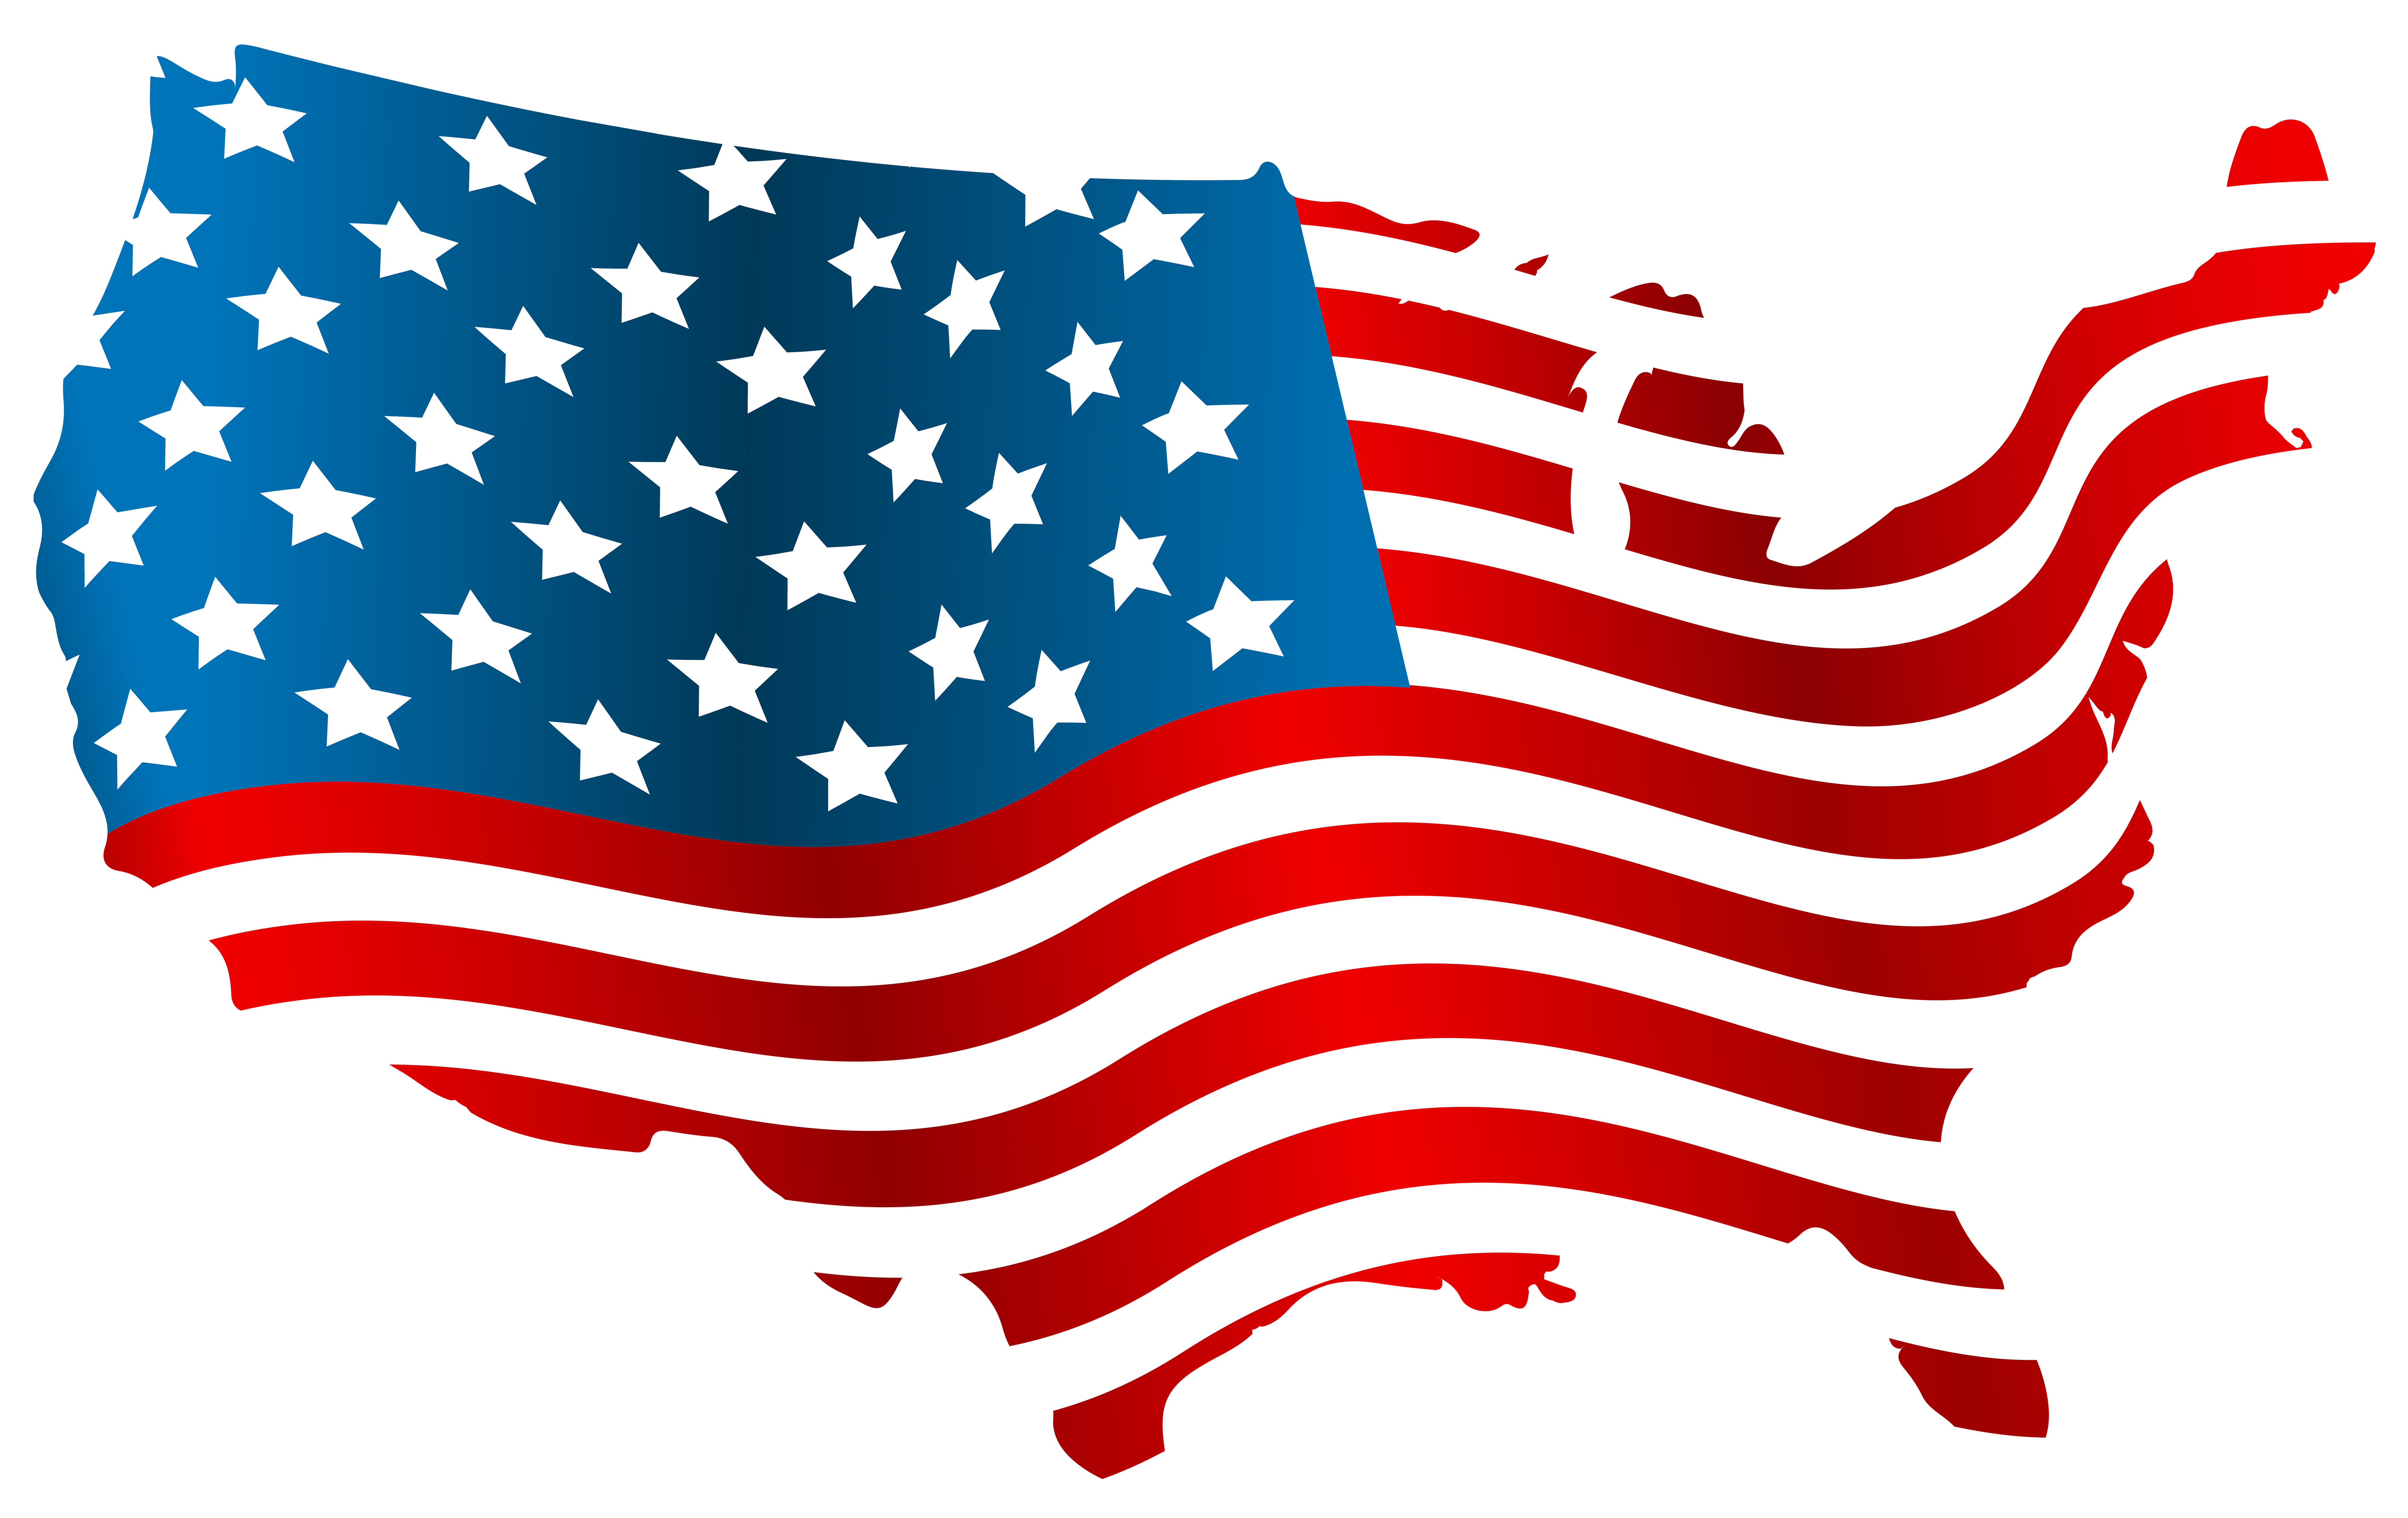 Usa Flag Map Png Clip Art Image Gallery Yopriceville High Quality Images And Transparent Png Free Clipart Road Trip Fun Art Images American Road Trip